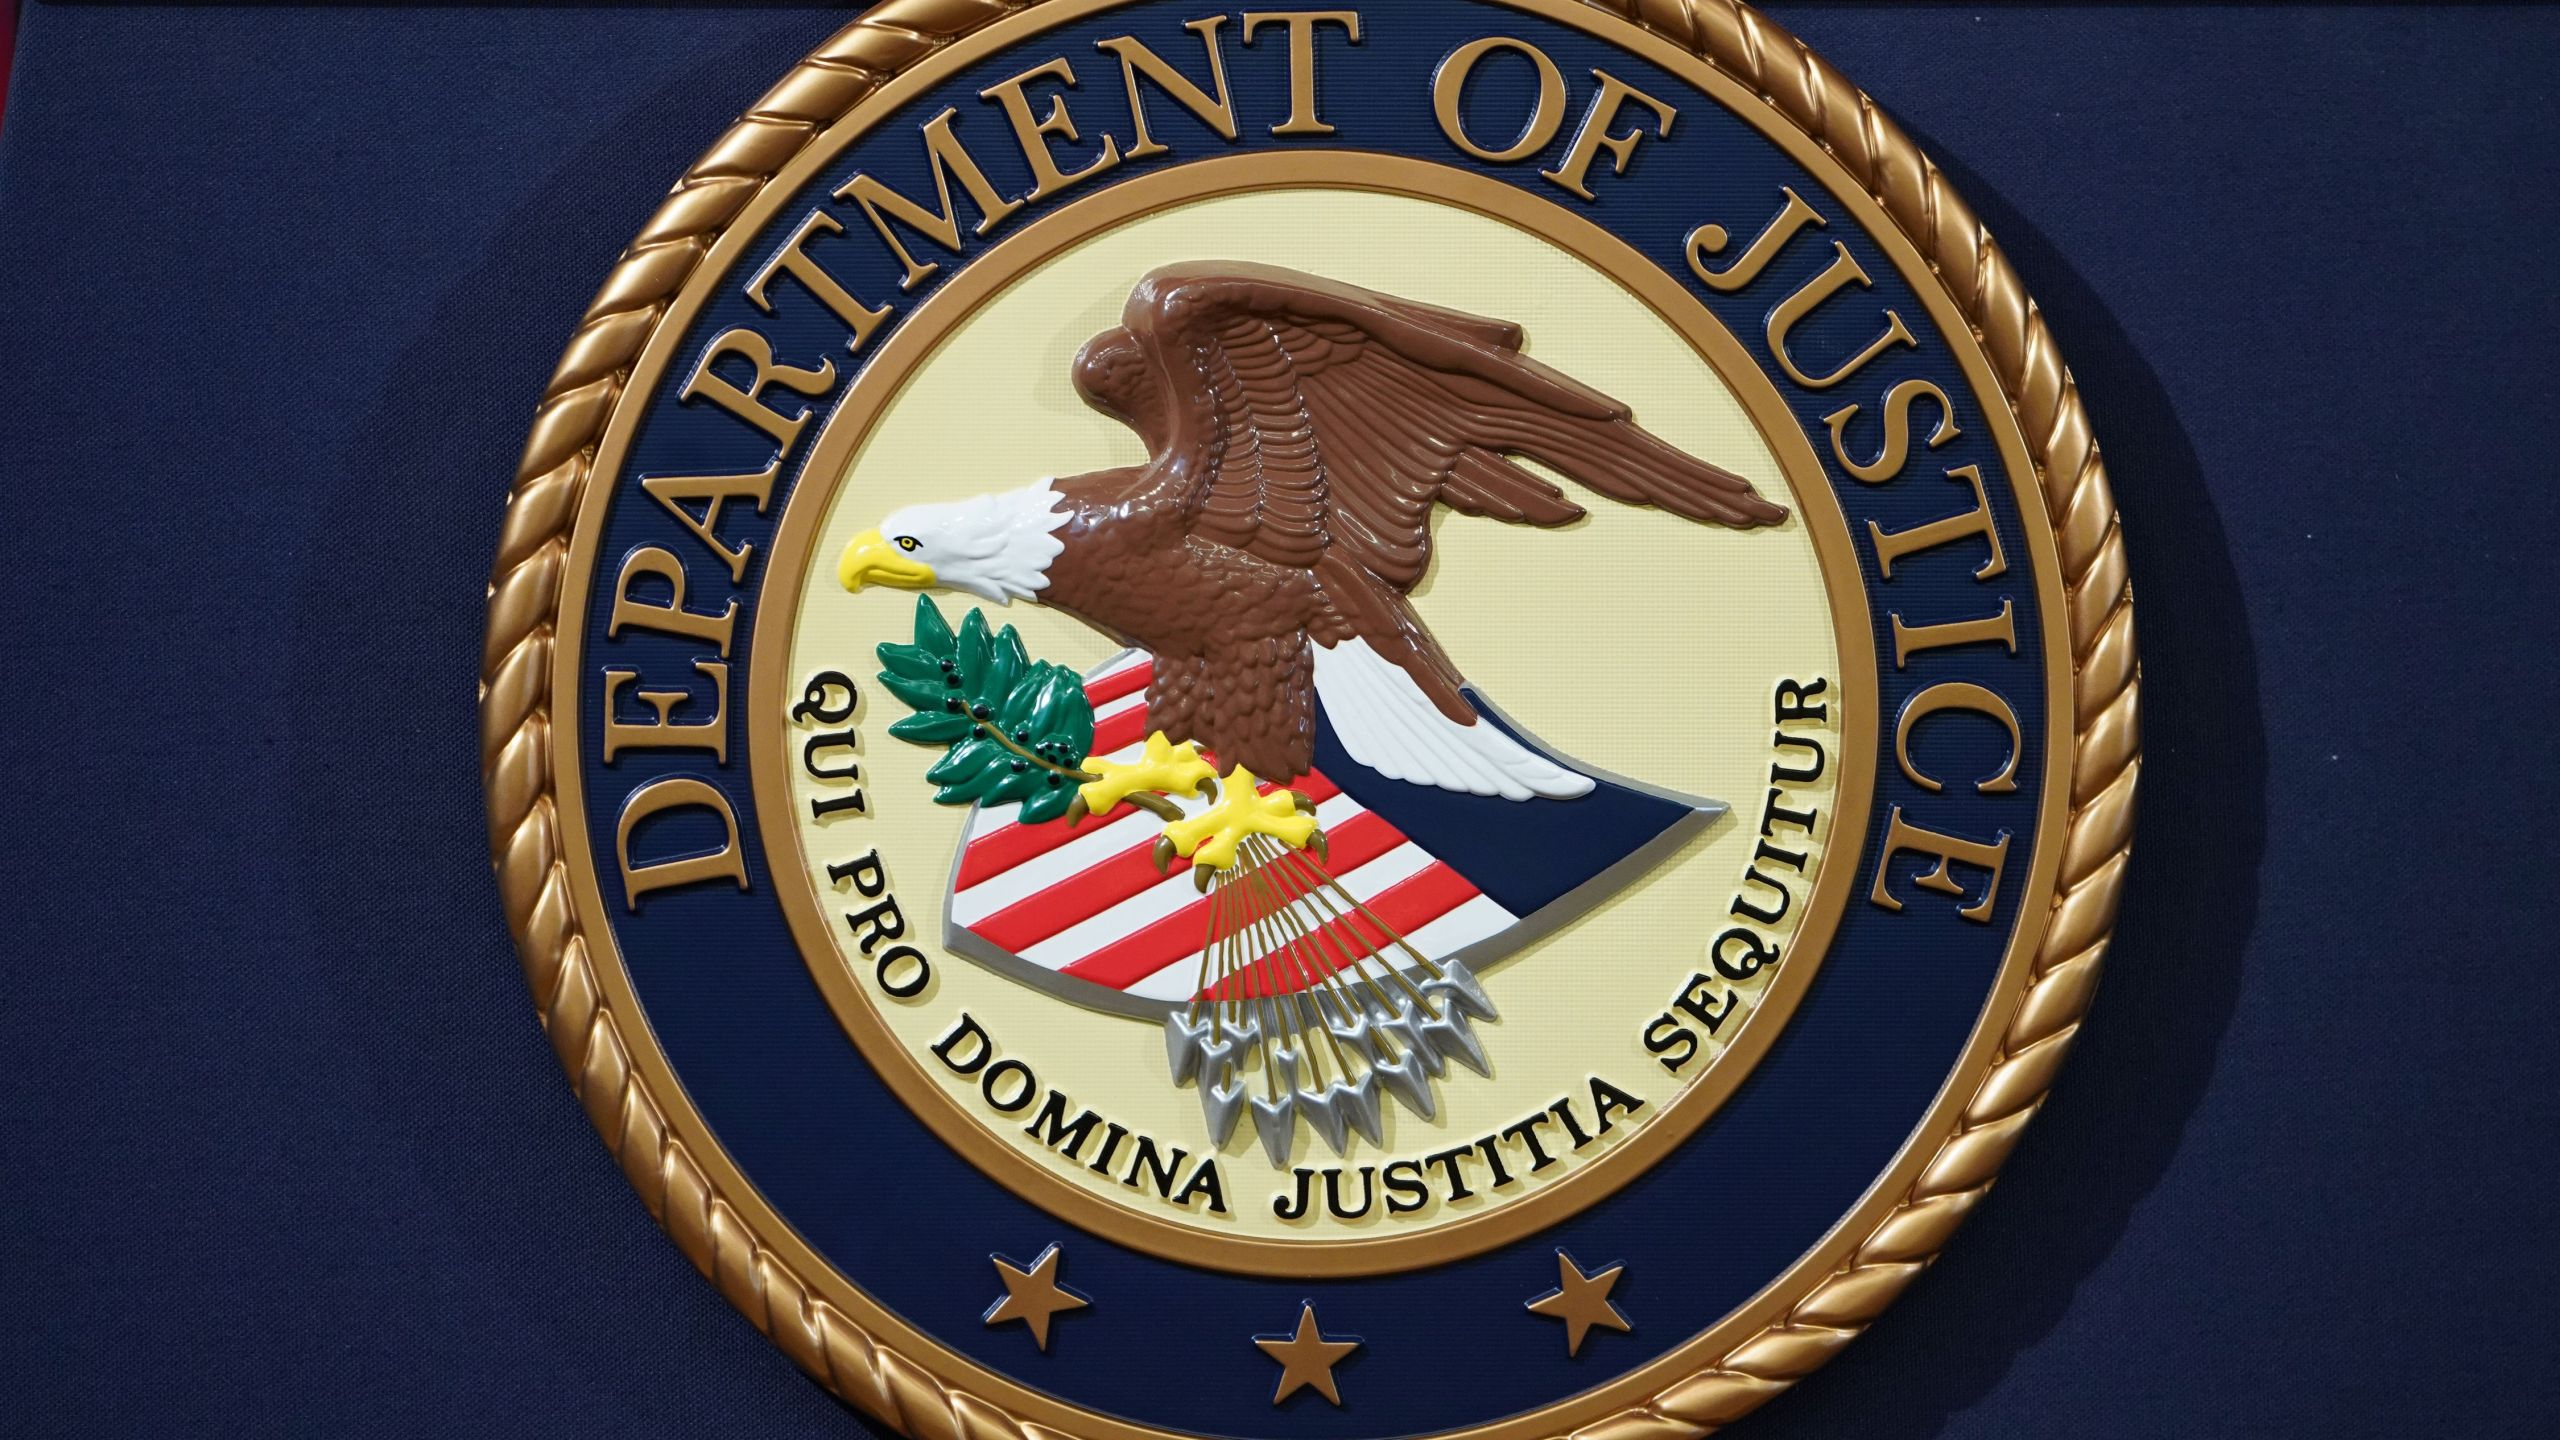 The Department of Justice seal is seen on a lectern ahead of a press conference announcing efforts against computer hacking and extortion at the Department of Justice in Washington, DC on November 28, 2018. (MANDEL NGAN/AFP via Getty Images)